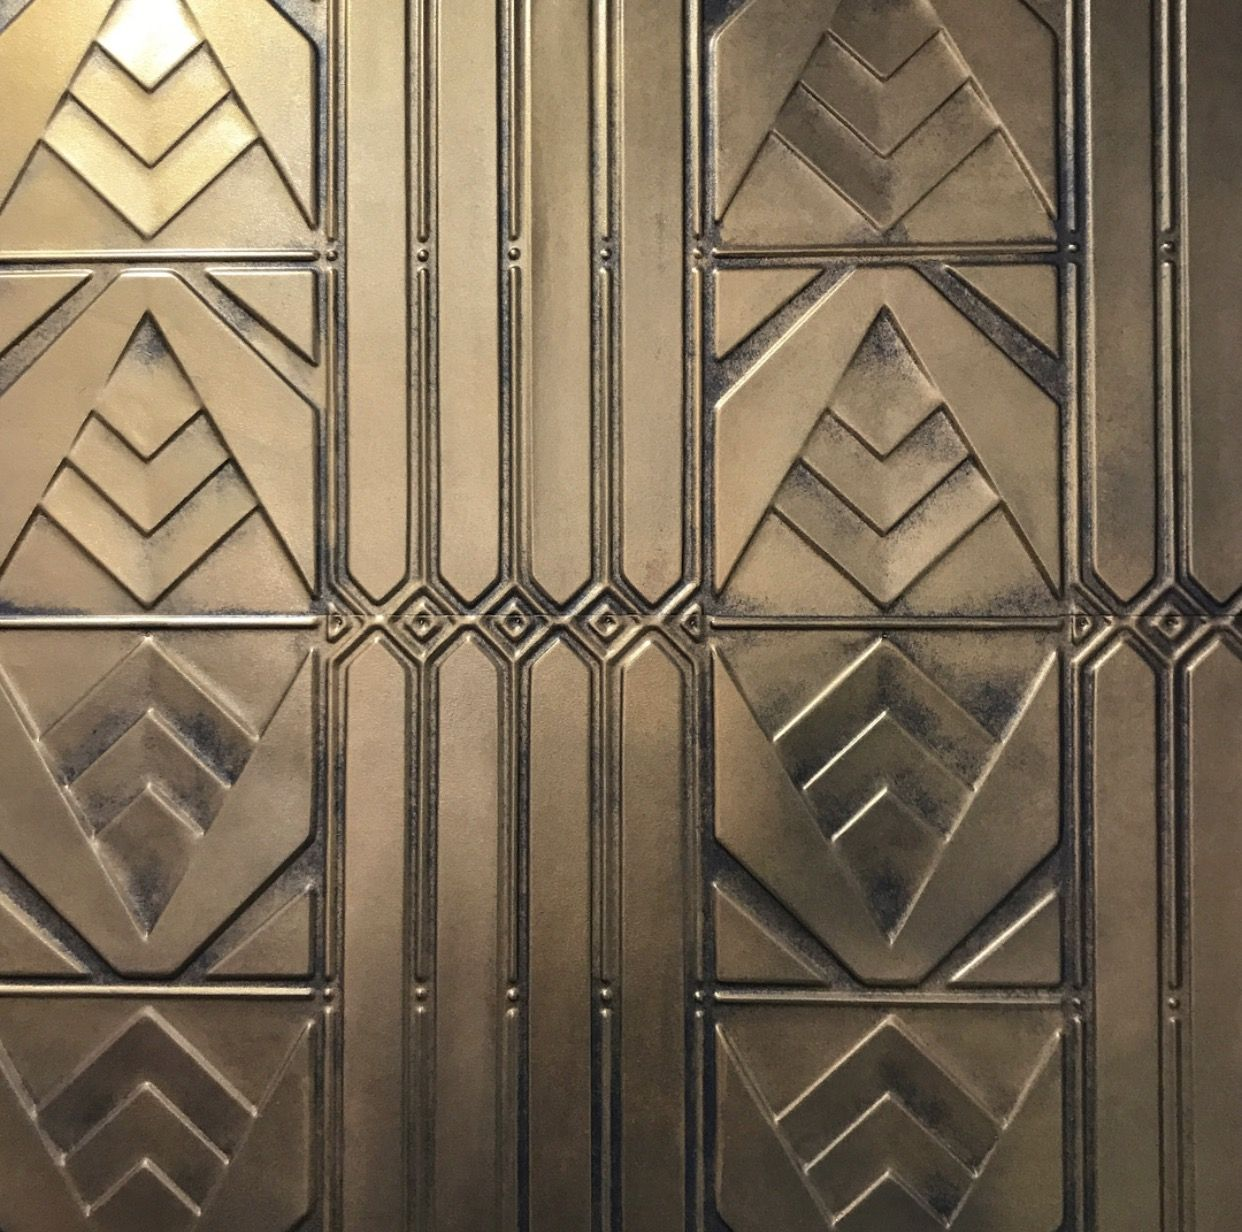 Brass Look Pressed Metal Panel In Art Deco Design The Oaks Sydney Pressed Metal Supply Install And Pressed Metal Ceiling Pressed Metal Pressed Metal Panels